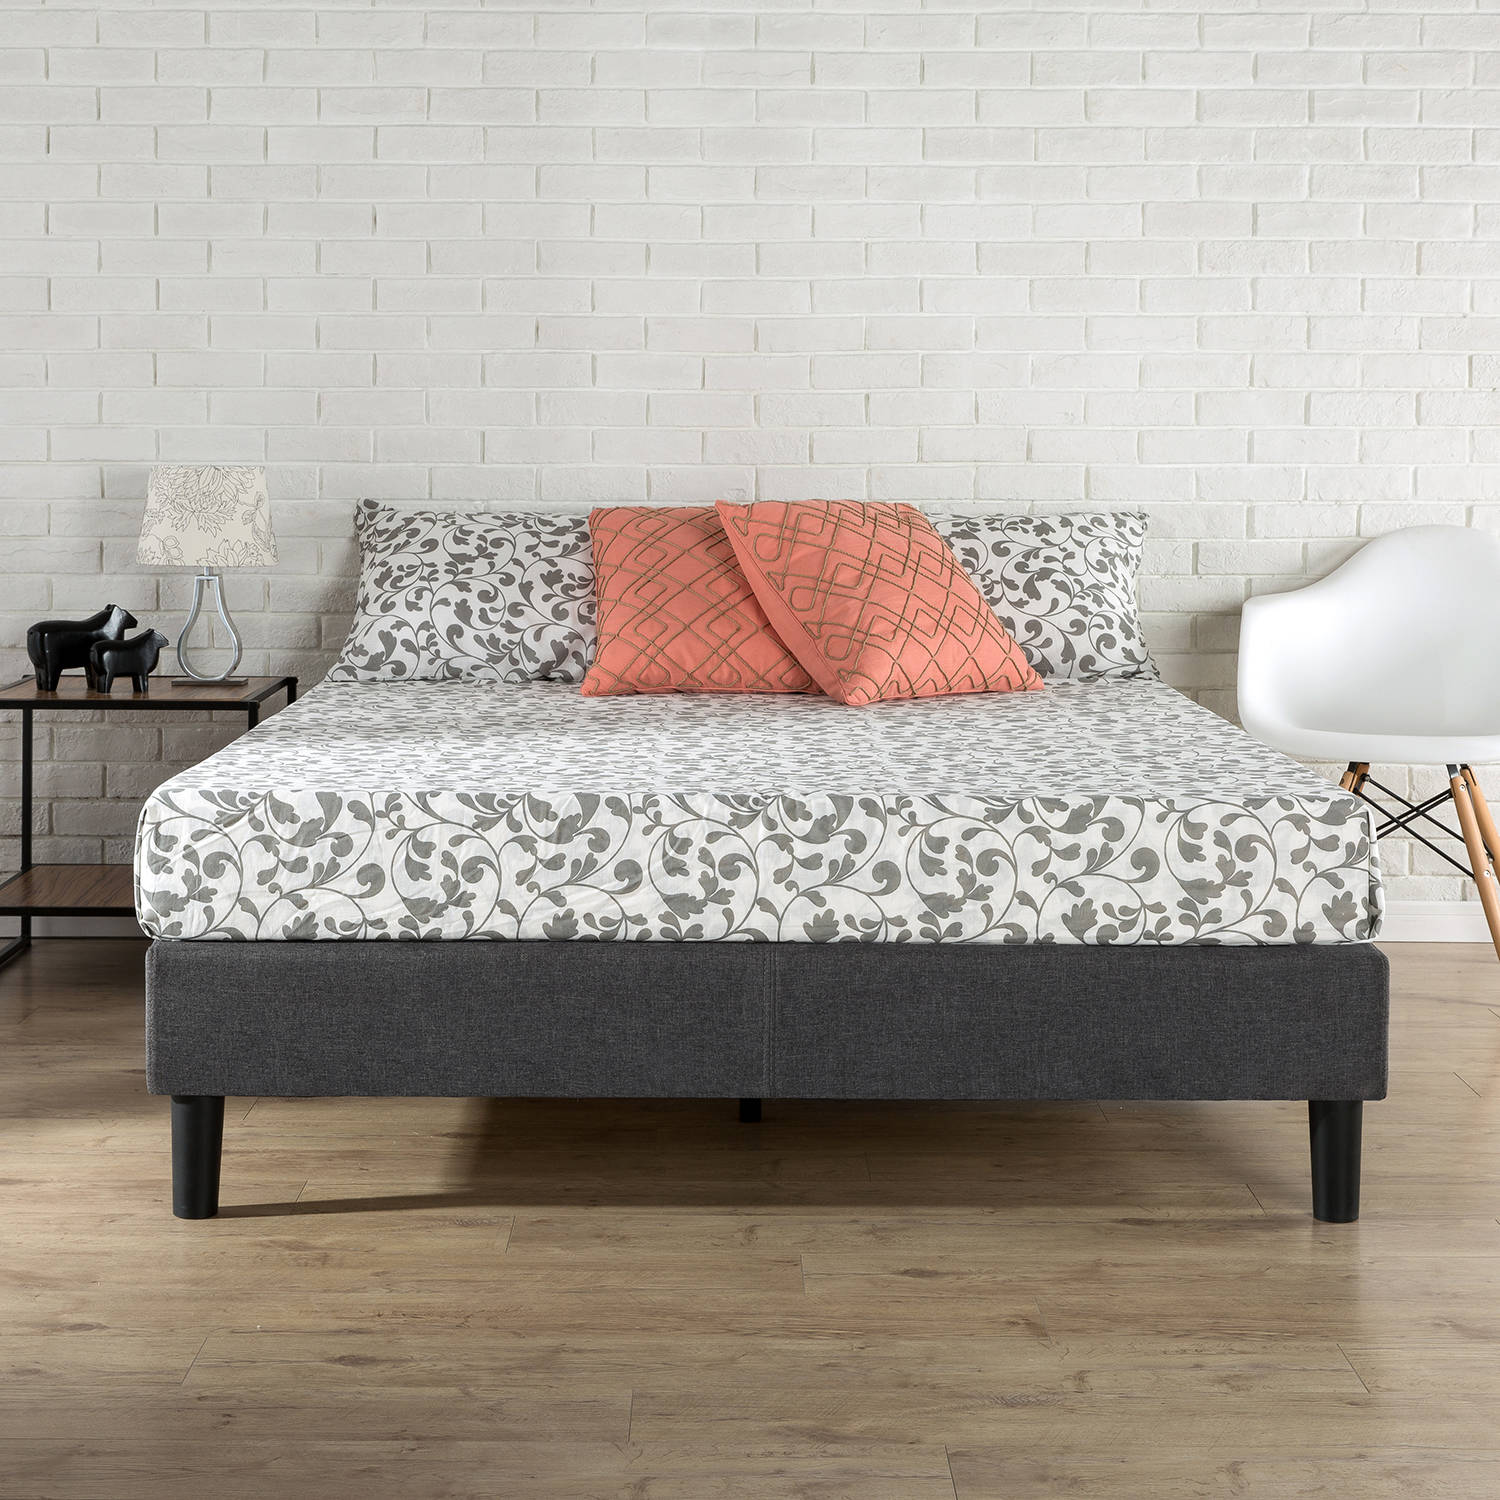 Zinus Essential Platform Bed Grey by ZINUS